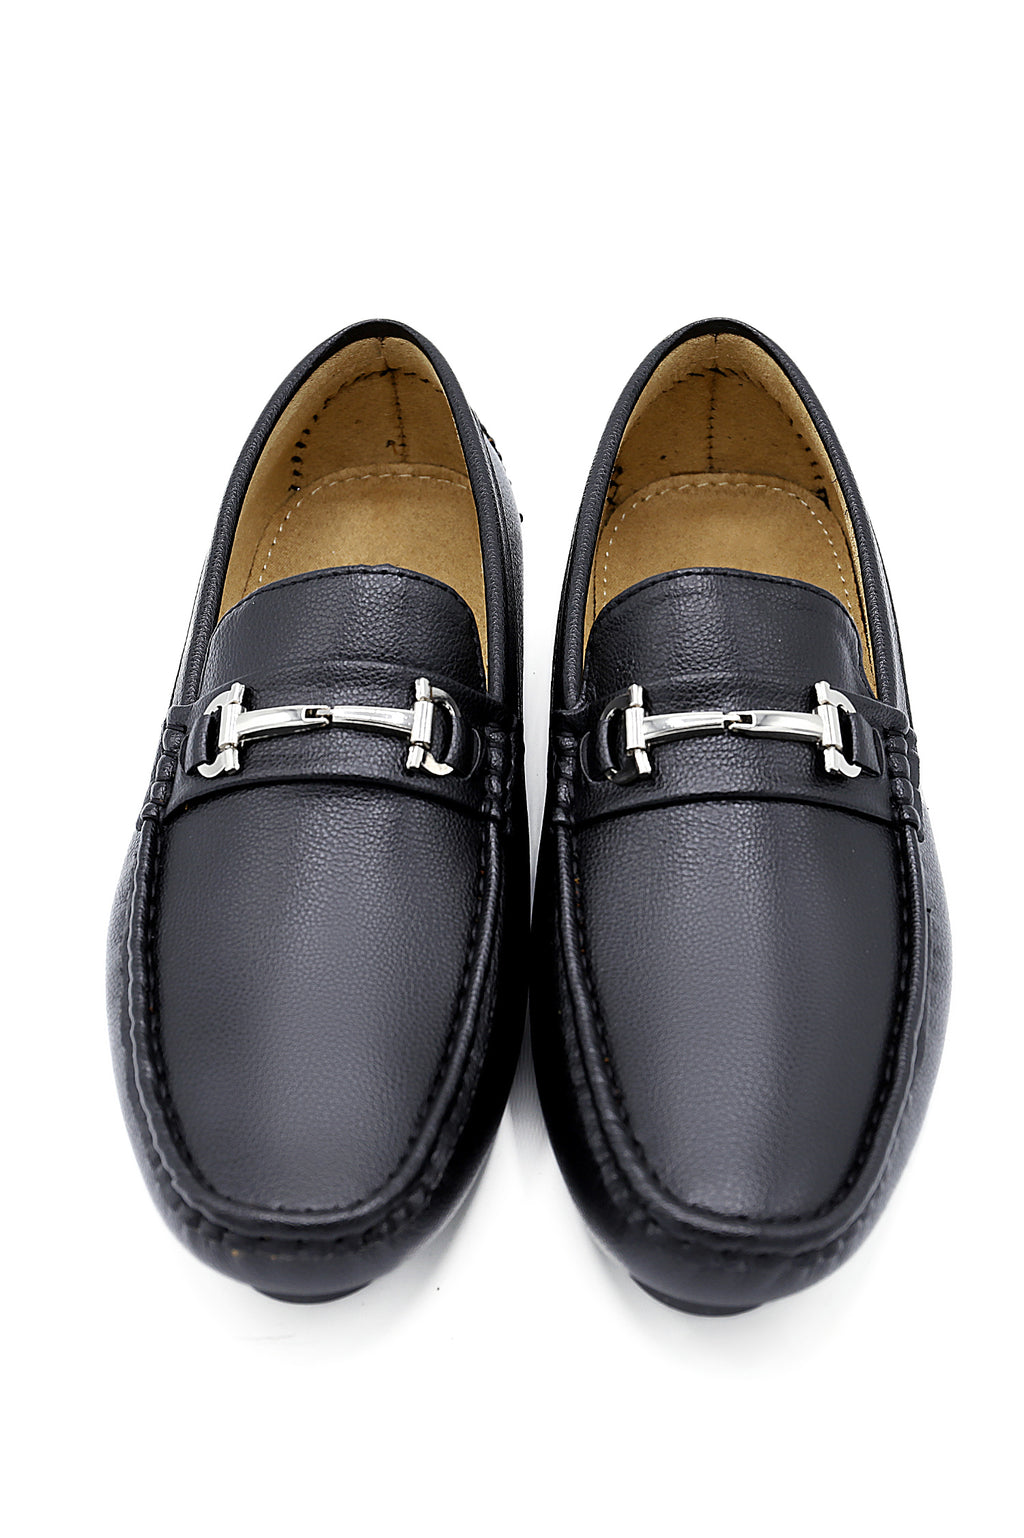 5d4858b7731 MEN S LOAFERS-BLACK